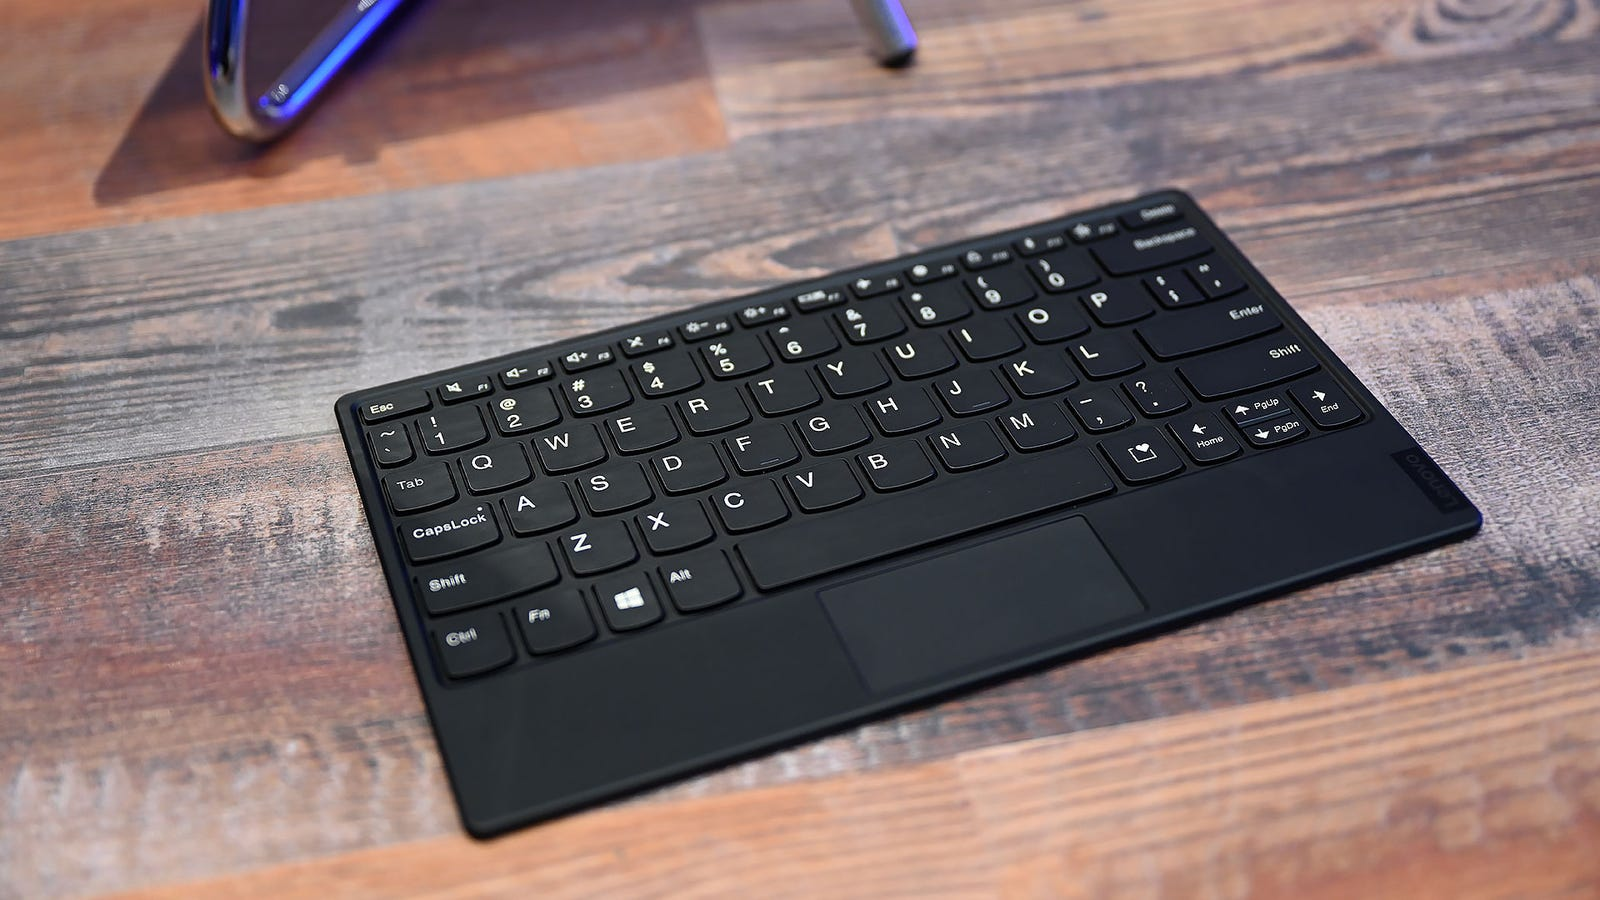 The keys on the magnetic keyboard a bit shallow, though the size of that touchpad will probably be a much bigger annoyance.